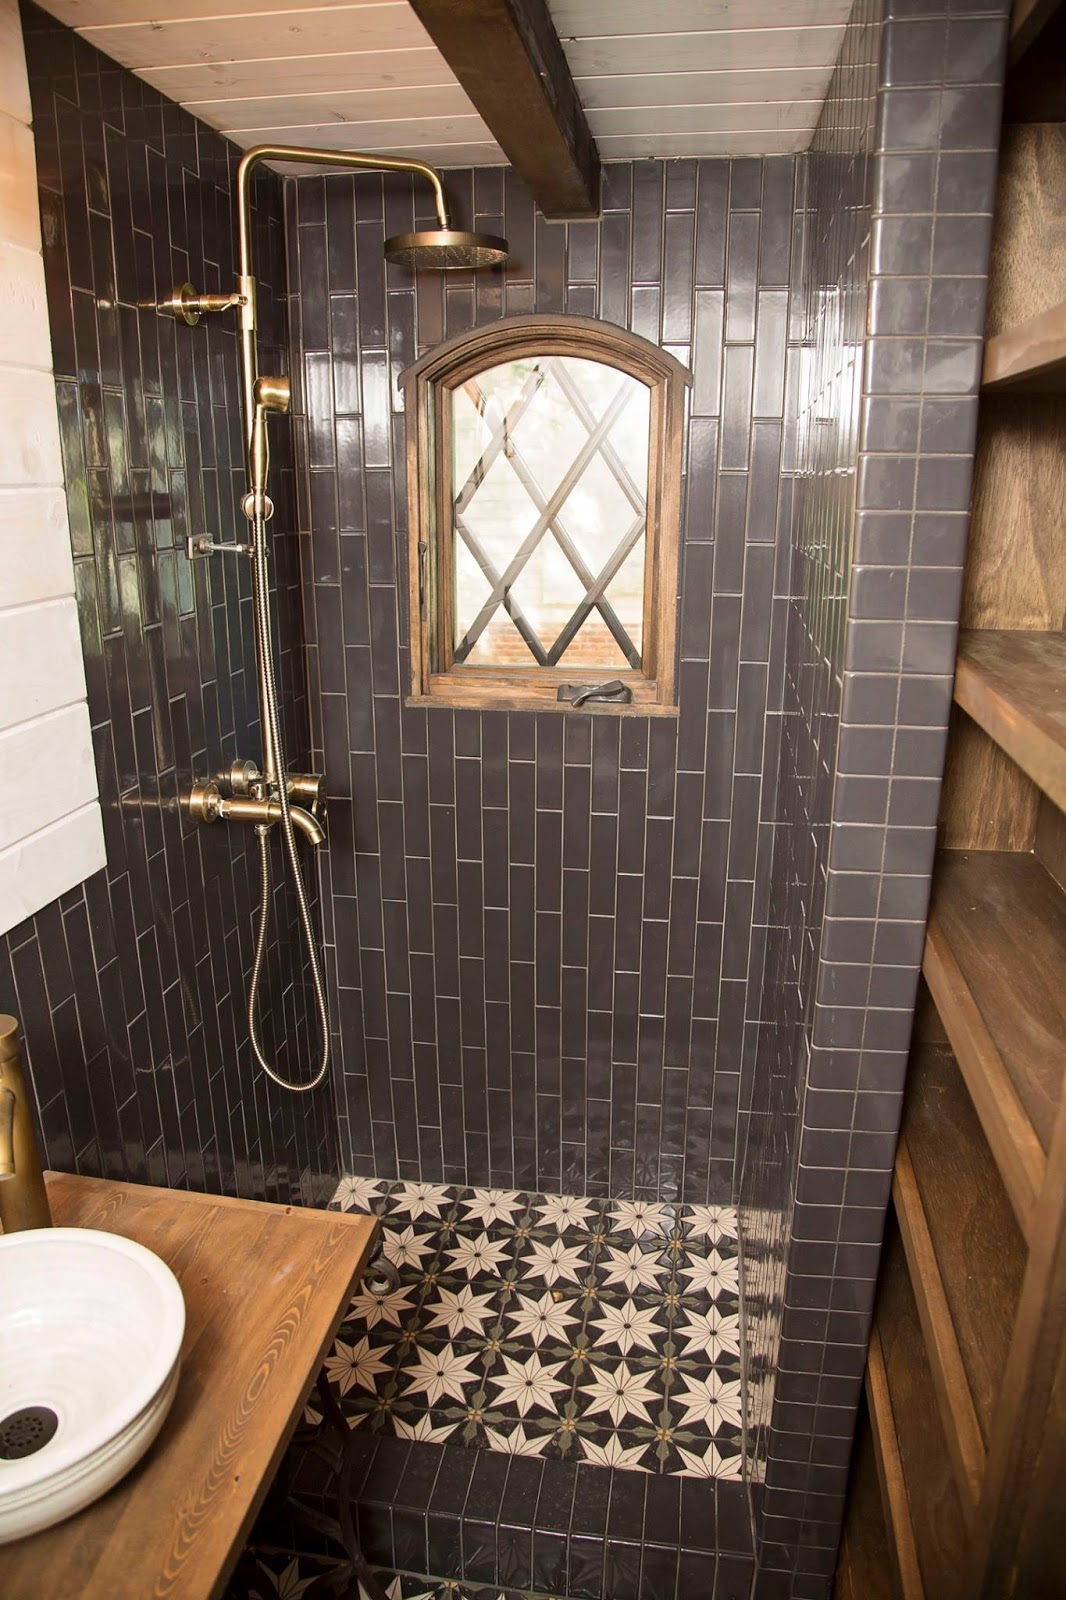 Tiny Home Bathroom Design: TINY HOUSE TOWN: Old World Vermont Tiny Home (300 Sq Ft